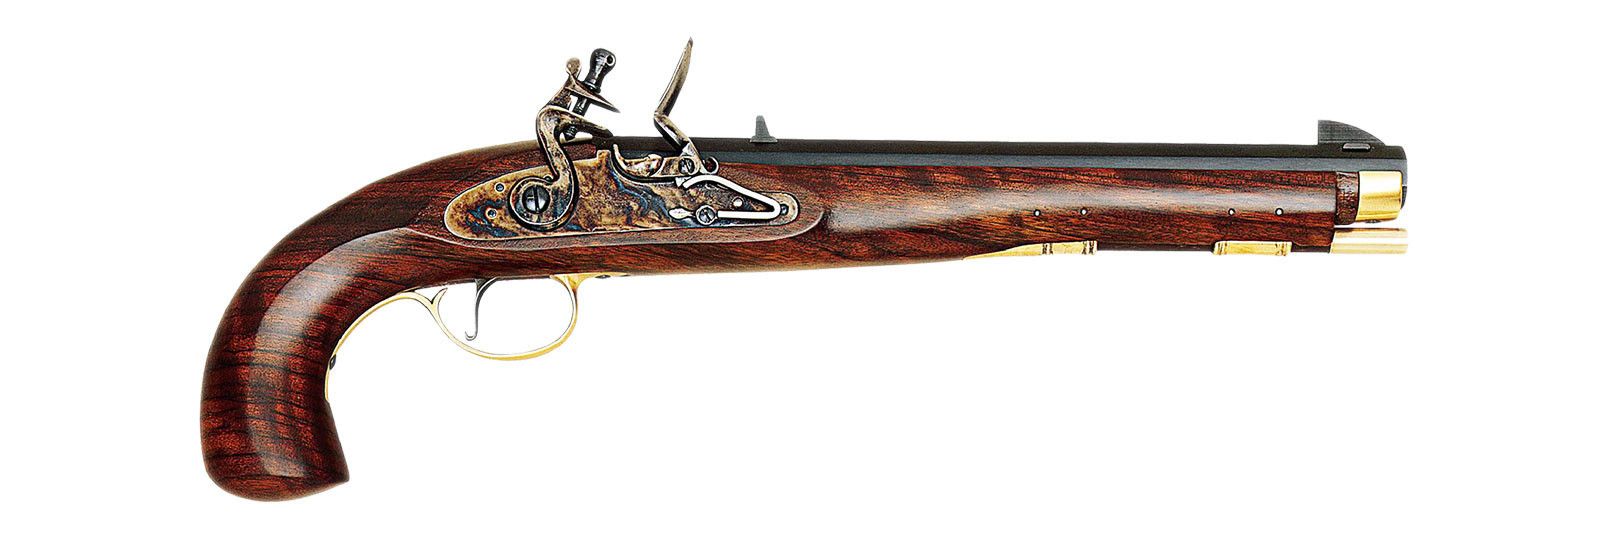 Kentucky Pistol flintlock model